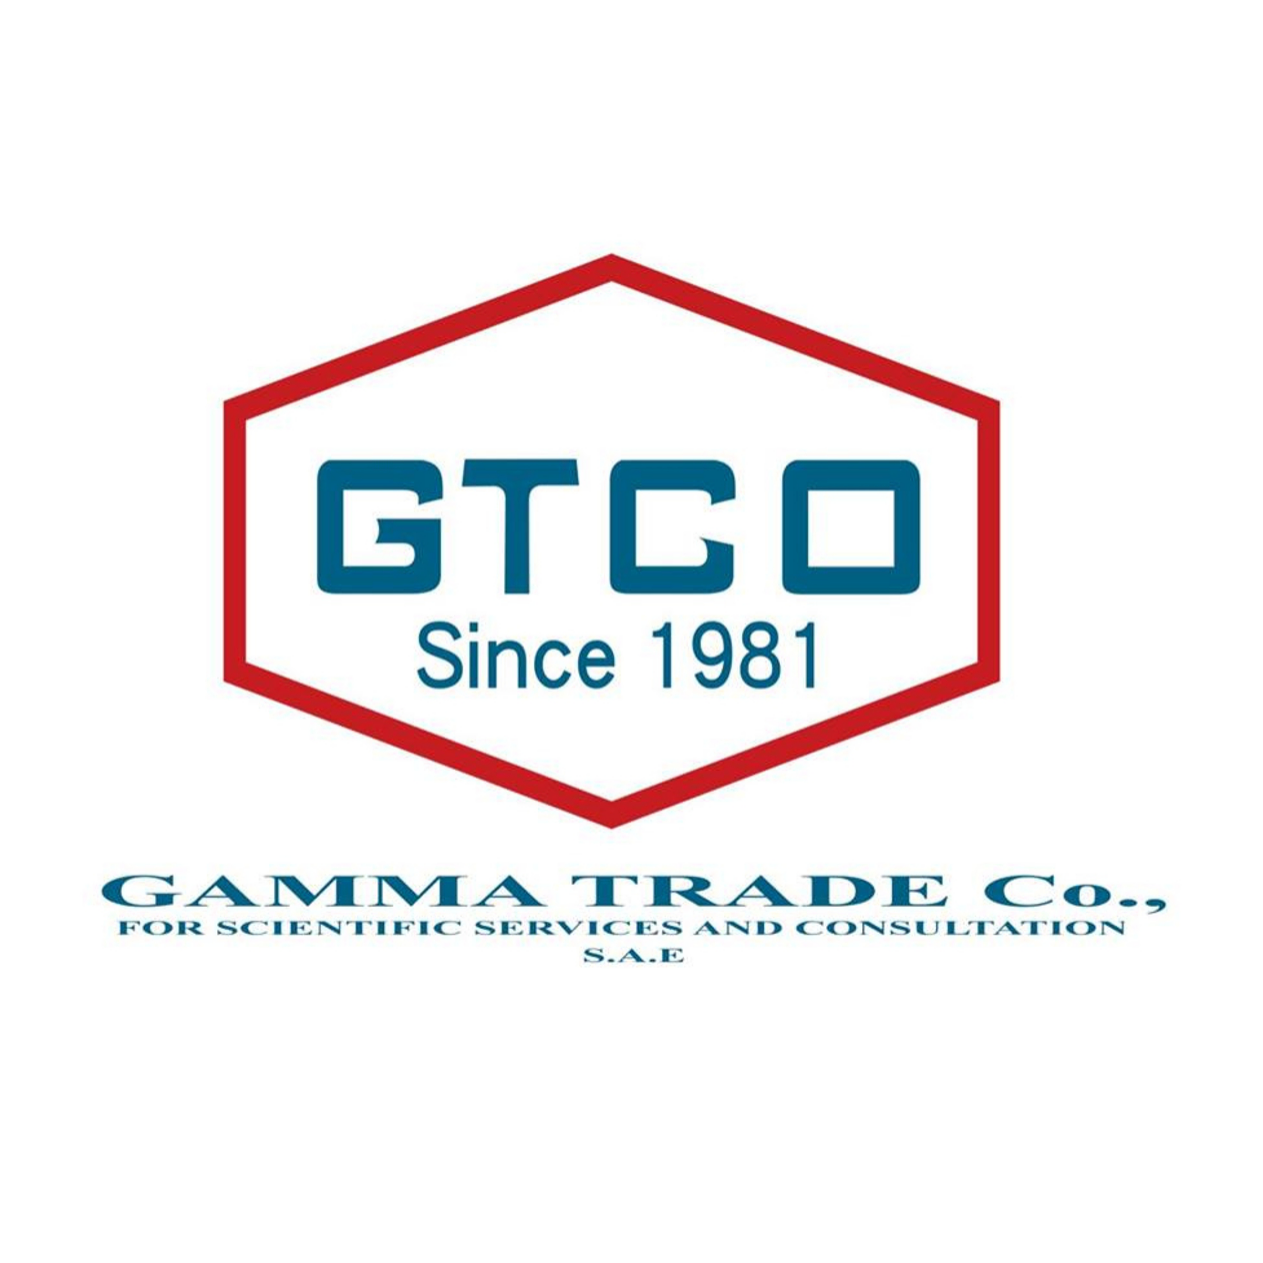 Gamma Trade co for scientific services & consultation's logo